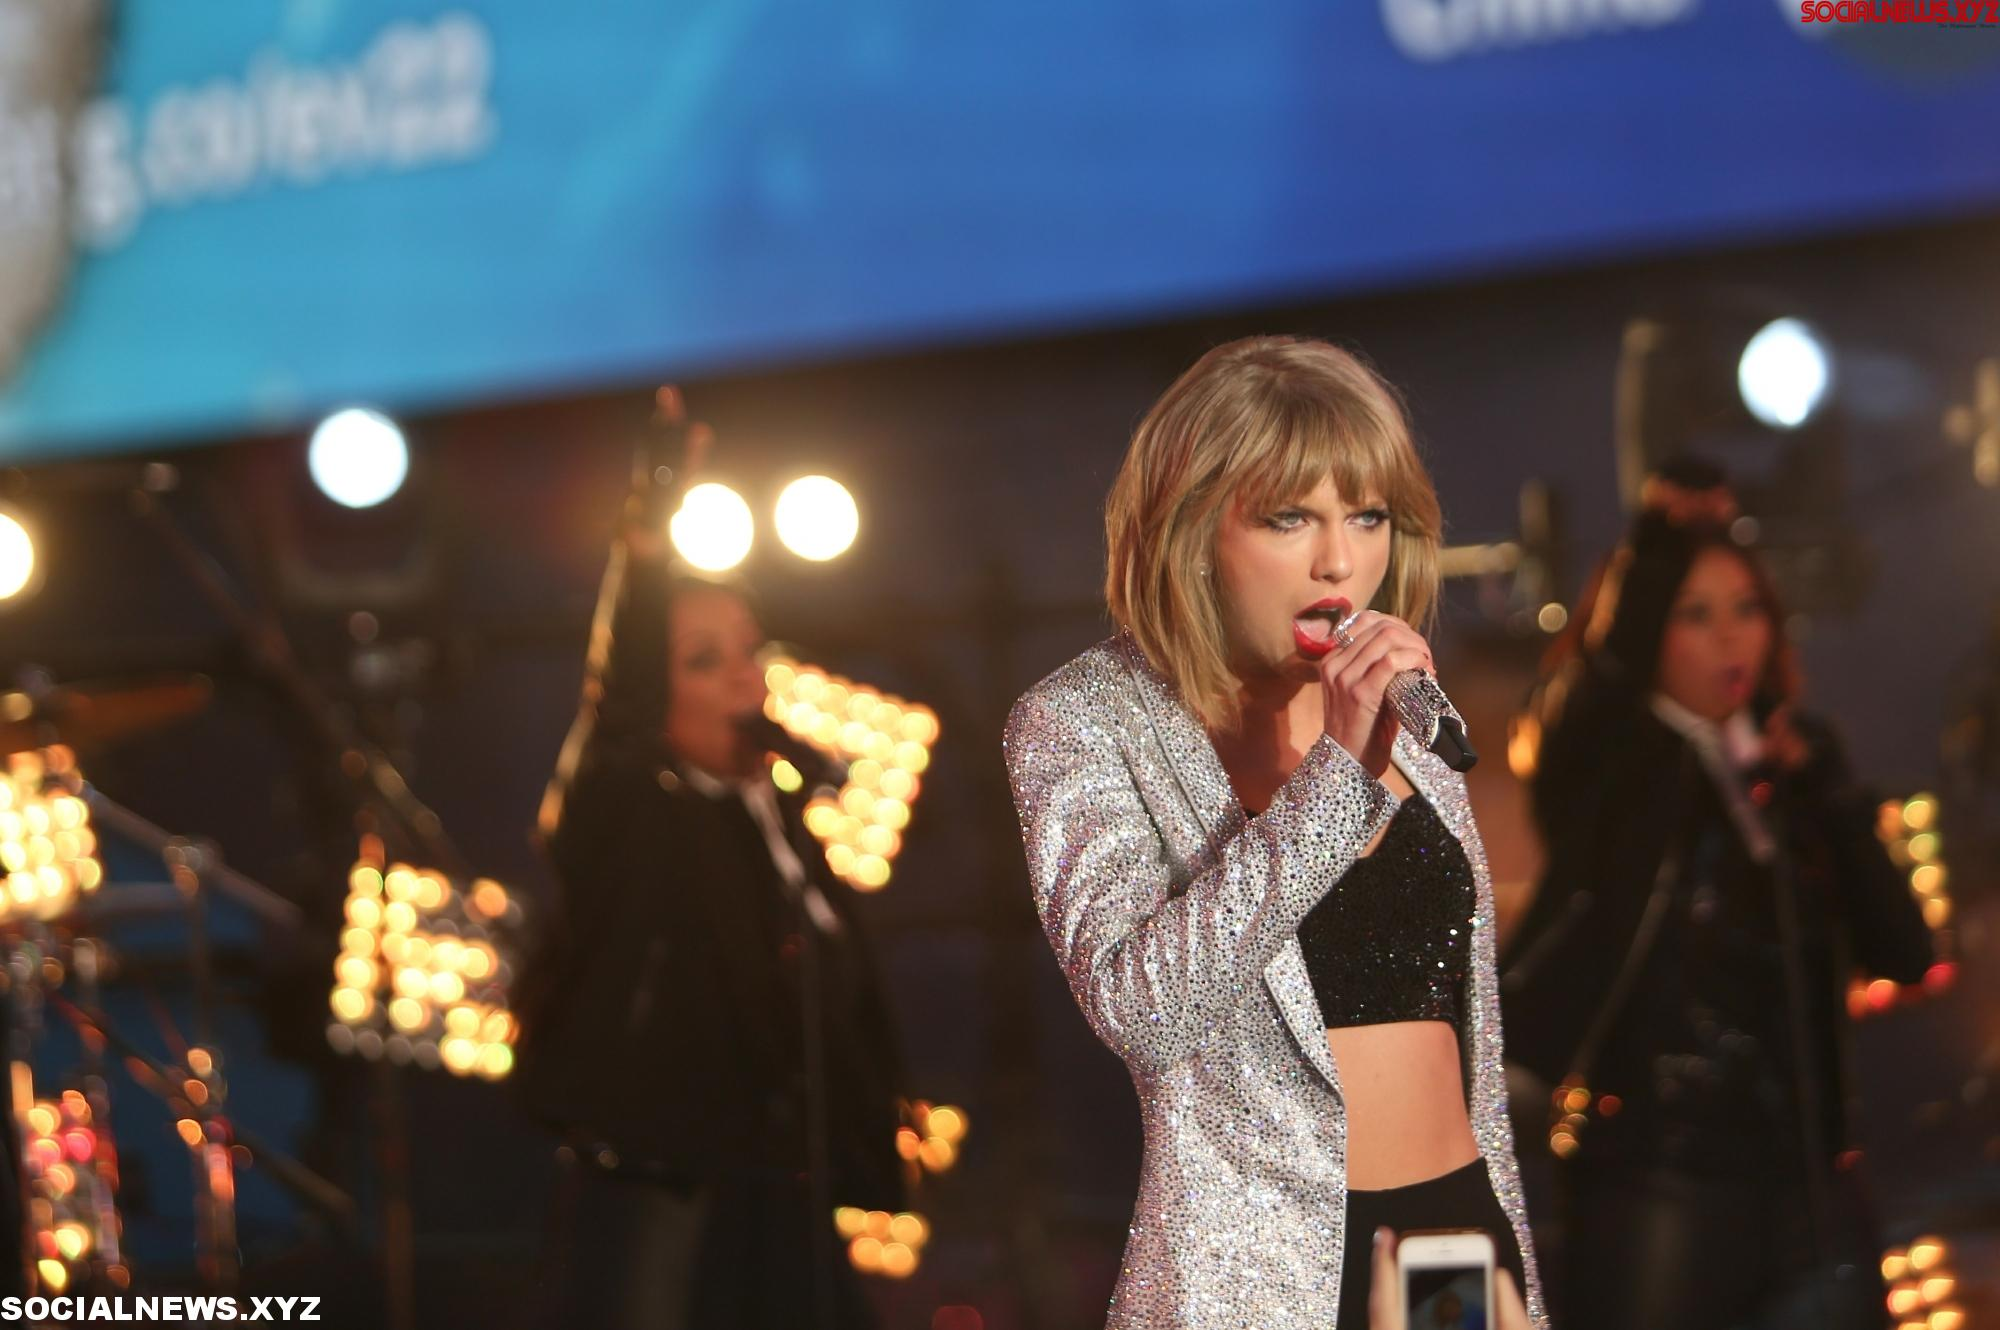 Taylor Swift traces her life story with NY gig